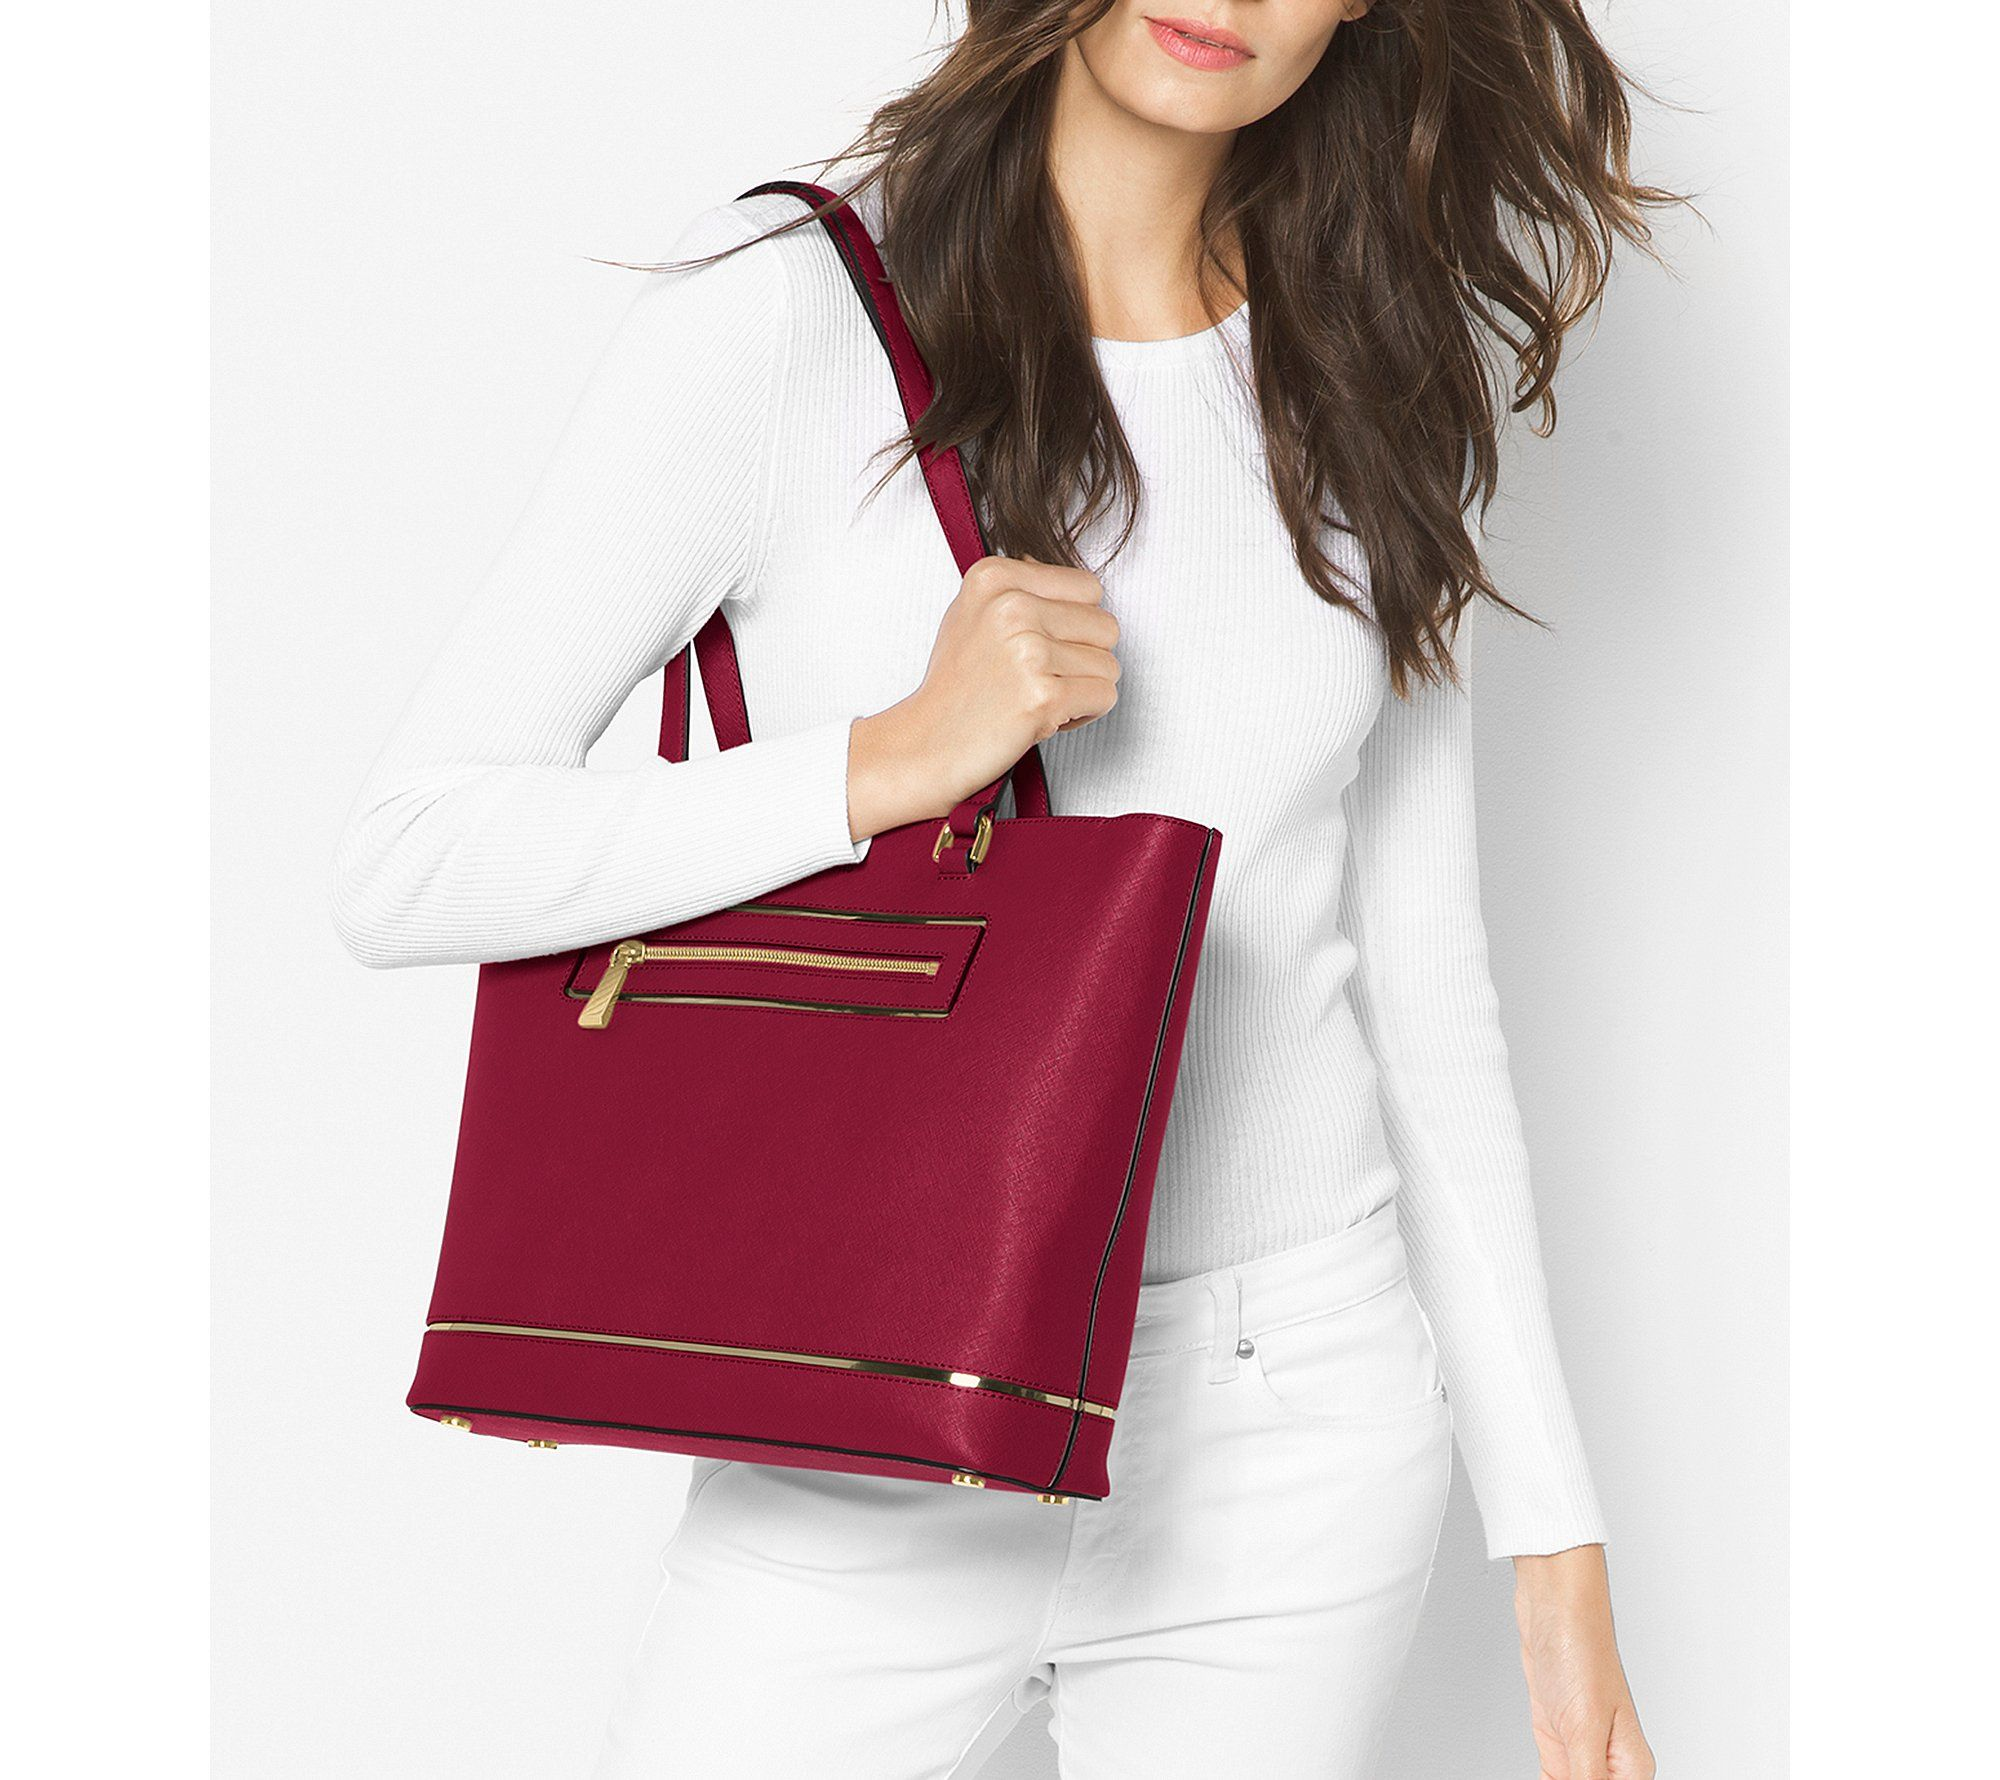 c76851211f4f MICHAEL Michael Kors Frame Out Item Large North South Tote Cherry >>> Be  sure to check out this awesome product. (This is an affiliate link) 0